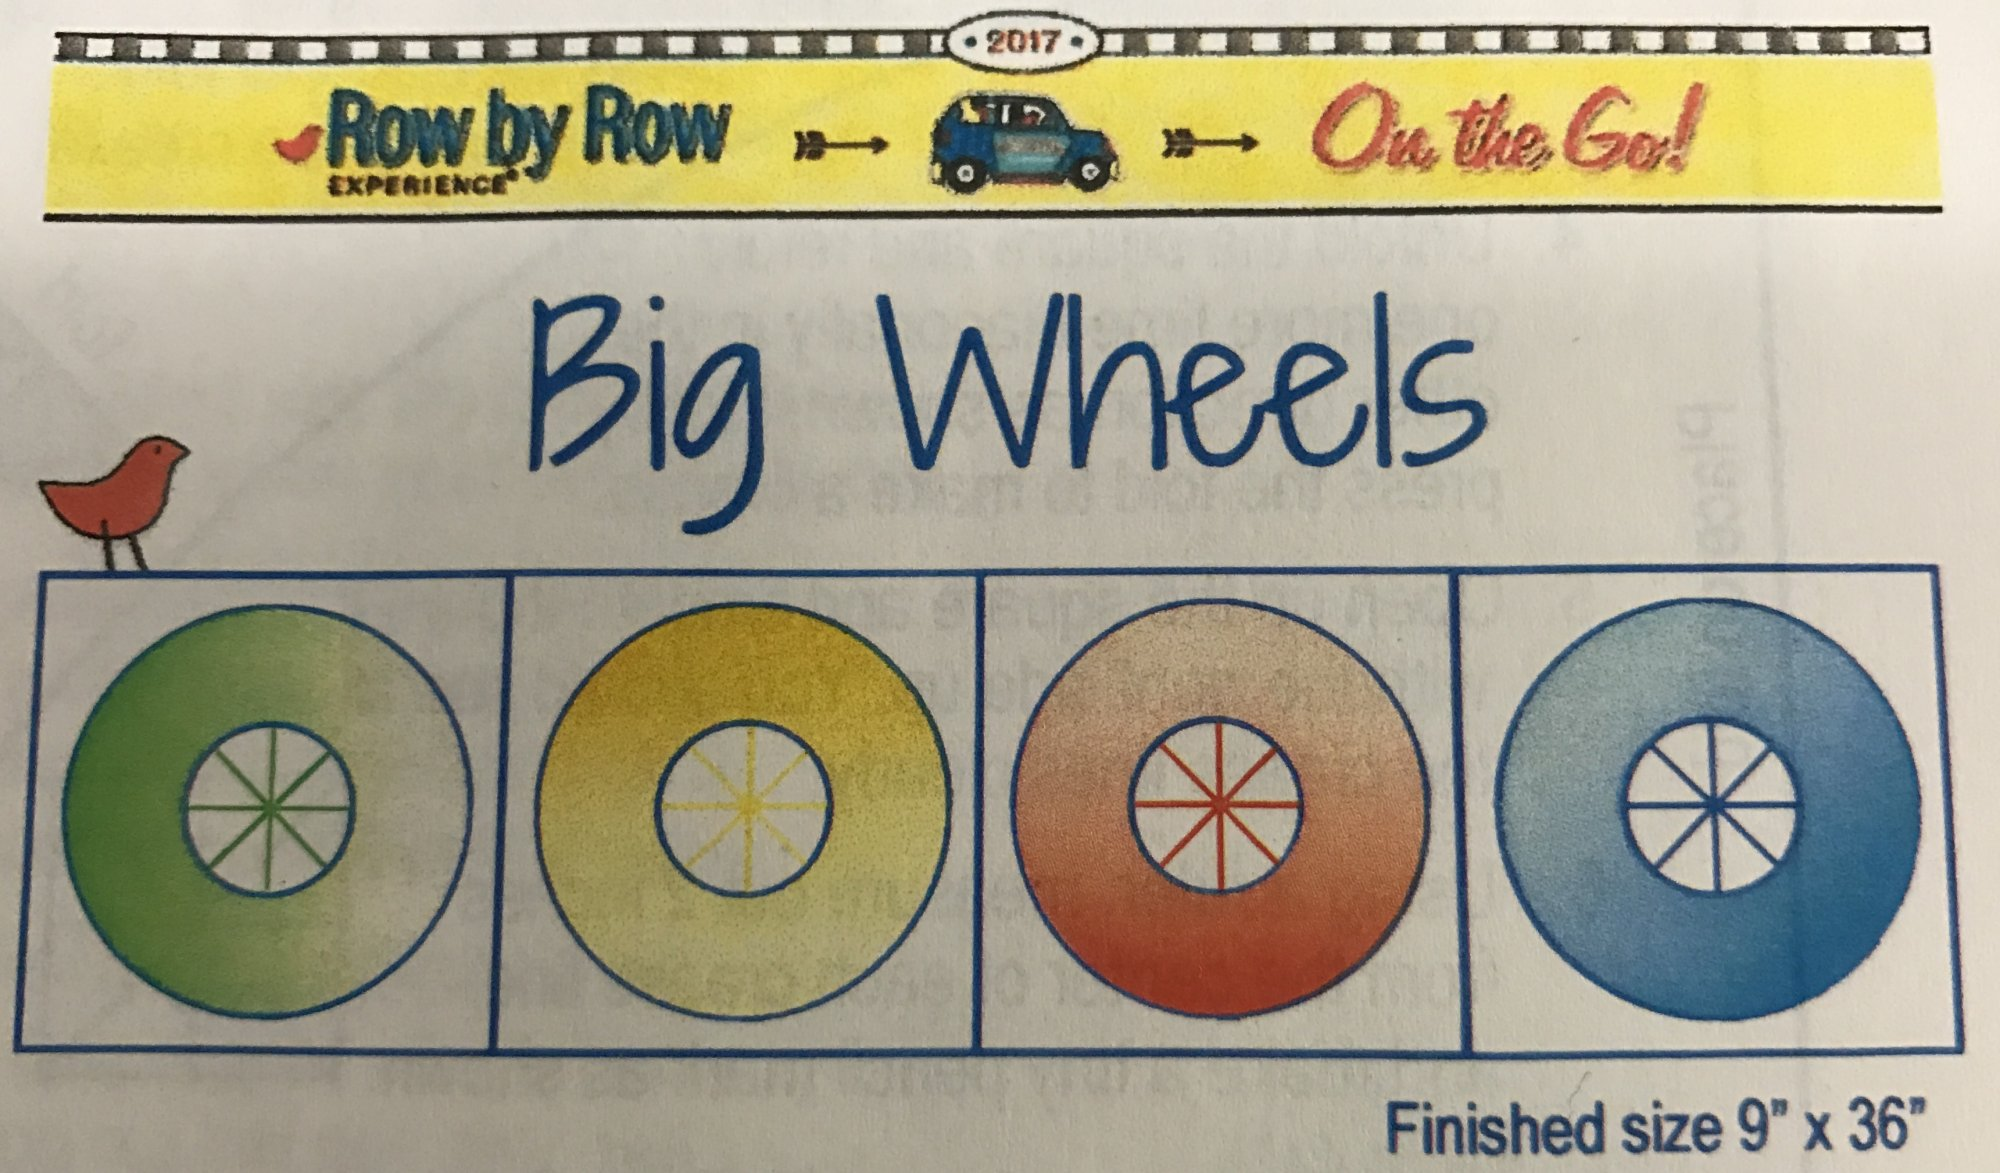 Jr Row by Row 2017 - Big Wheels Kit